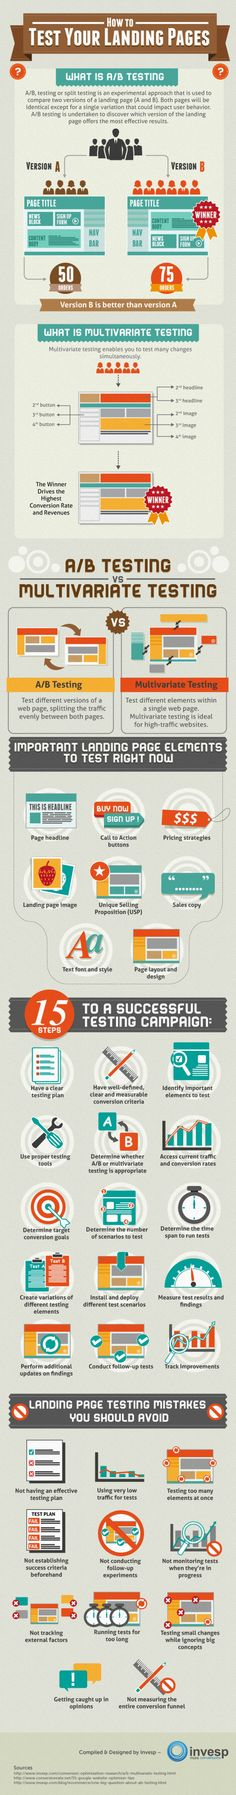 How To Test Your Landing Pages #abtesting | #Infographic #infografía